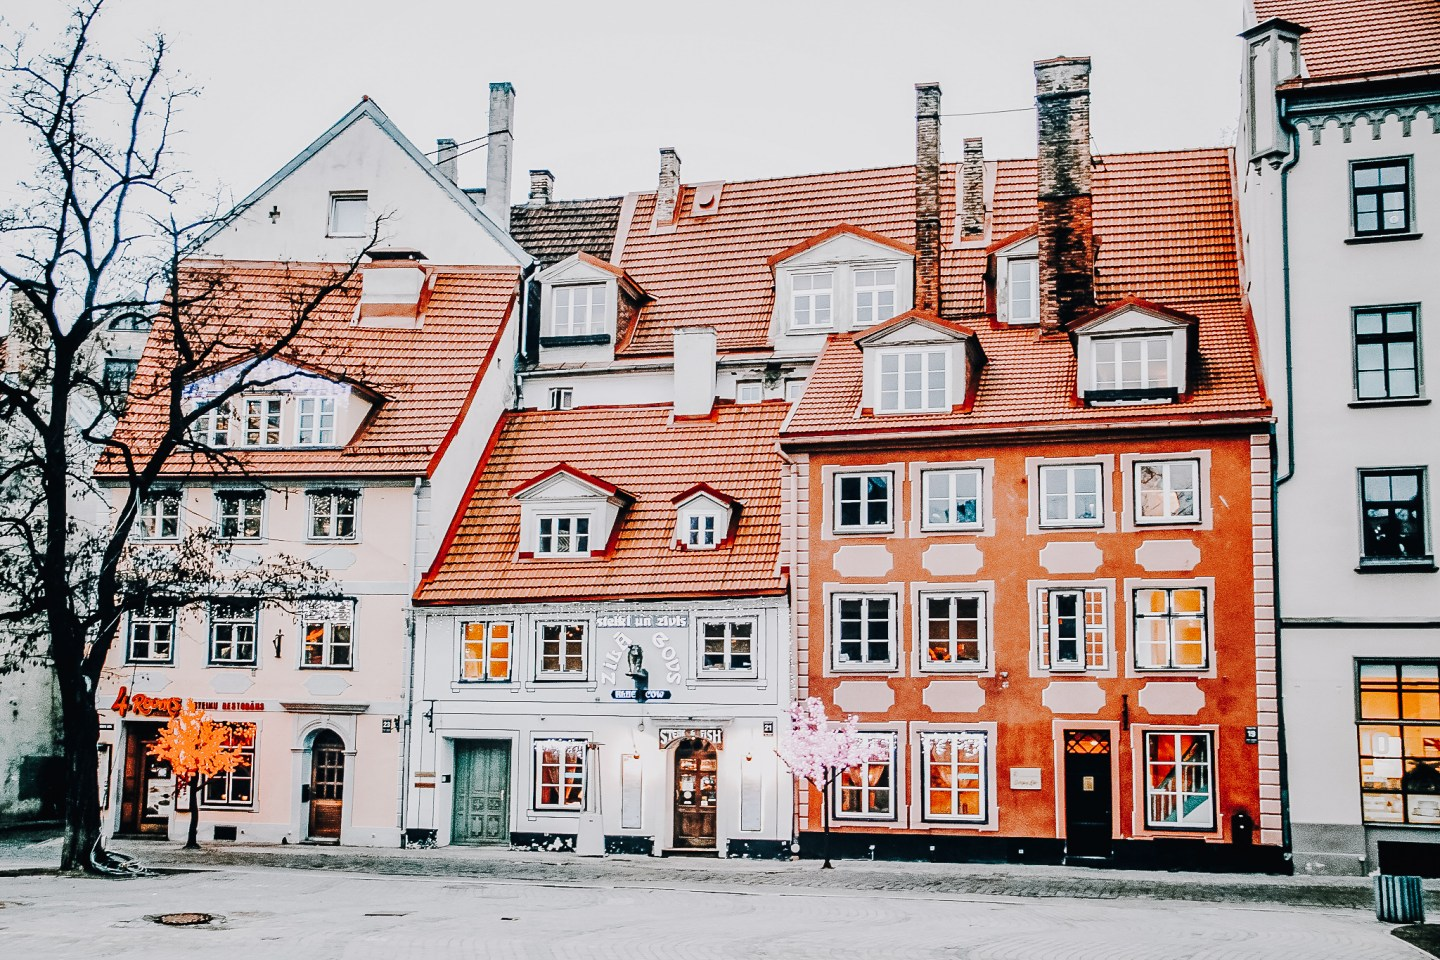 Things to do in Riga #3. Explore Old Town Riga